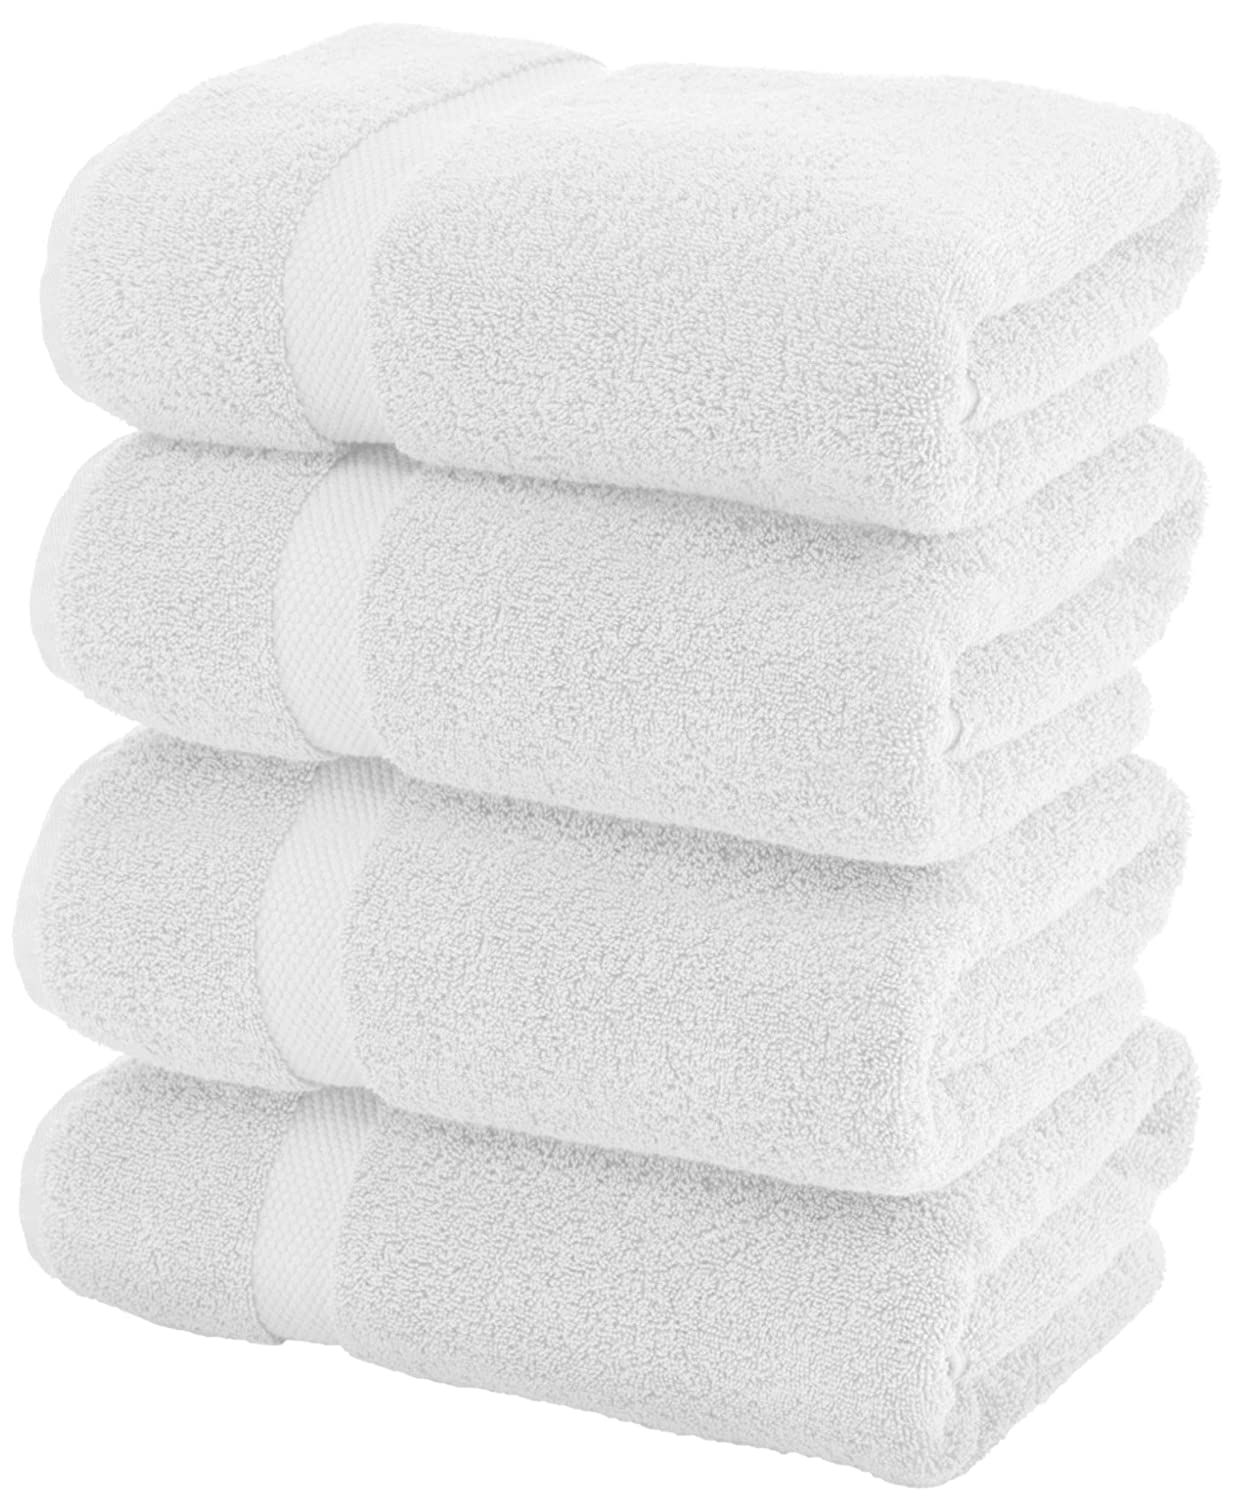 Luxury White Bath Towels Large - Circlet Egyptian Cotton | Highly Absorbent Hotel spa Collection Bathroom Towel | 27x54 Inch | Set of 4